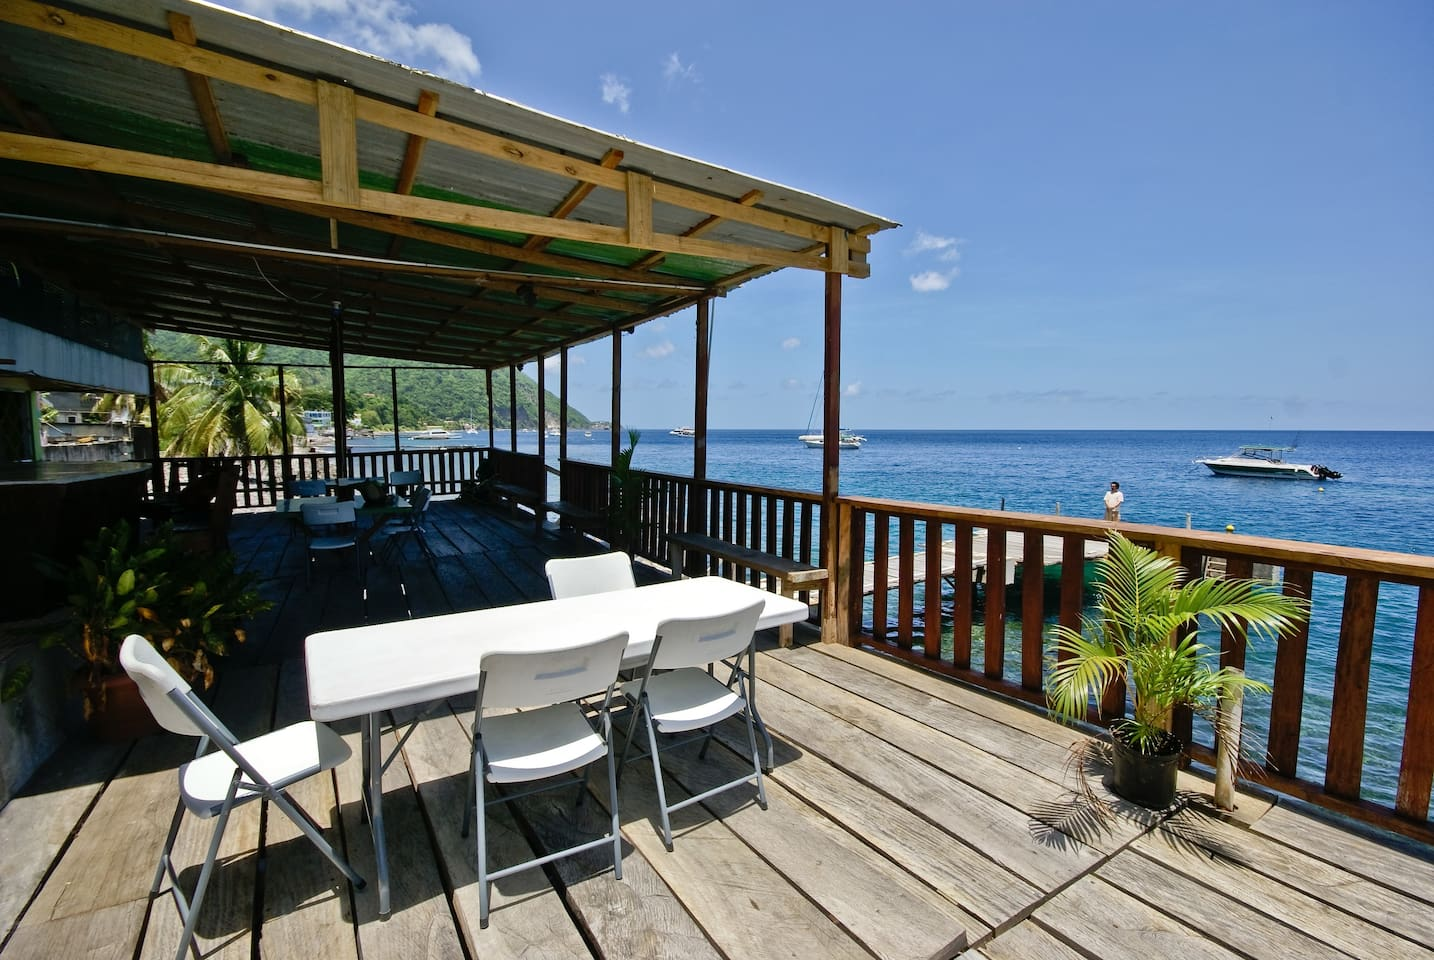 Ocean front terrace for relaxation, recreation, restaurant and bar